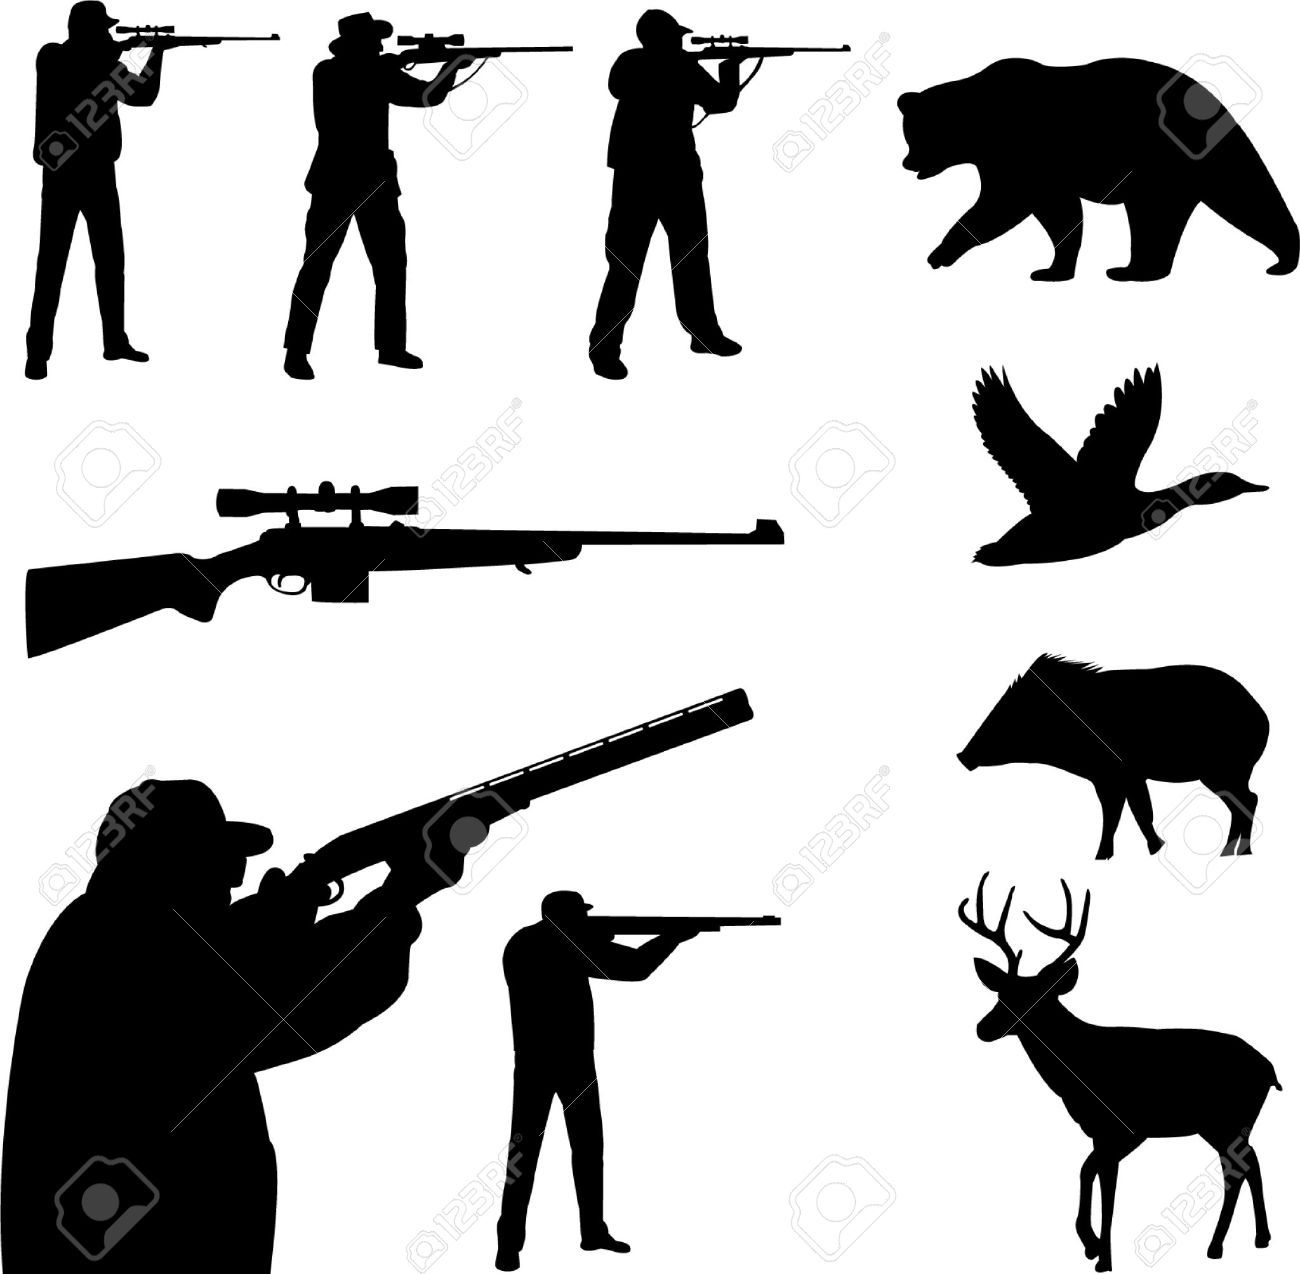 Free hunting clipart images. Deer cliparts stock vector